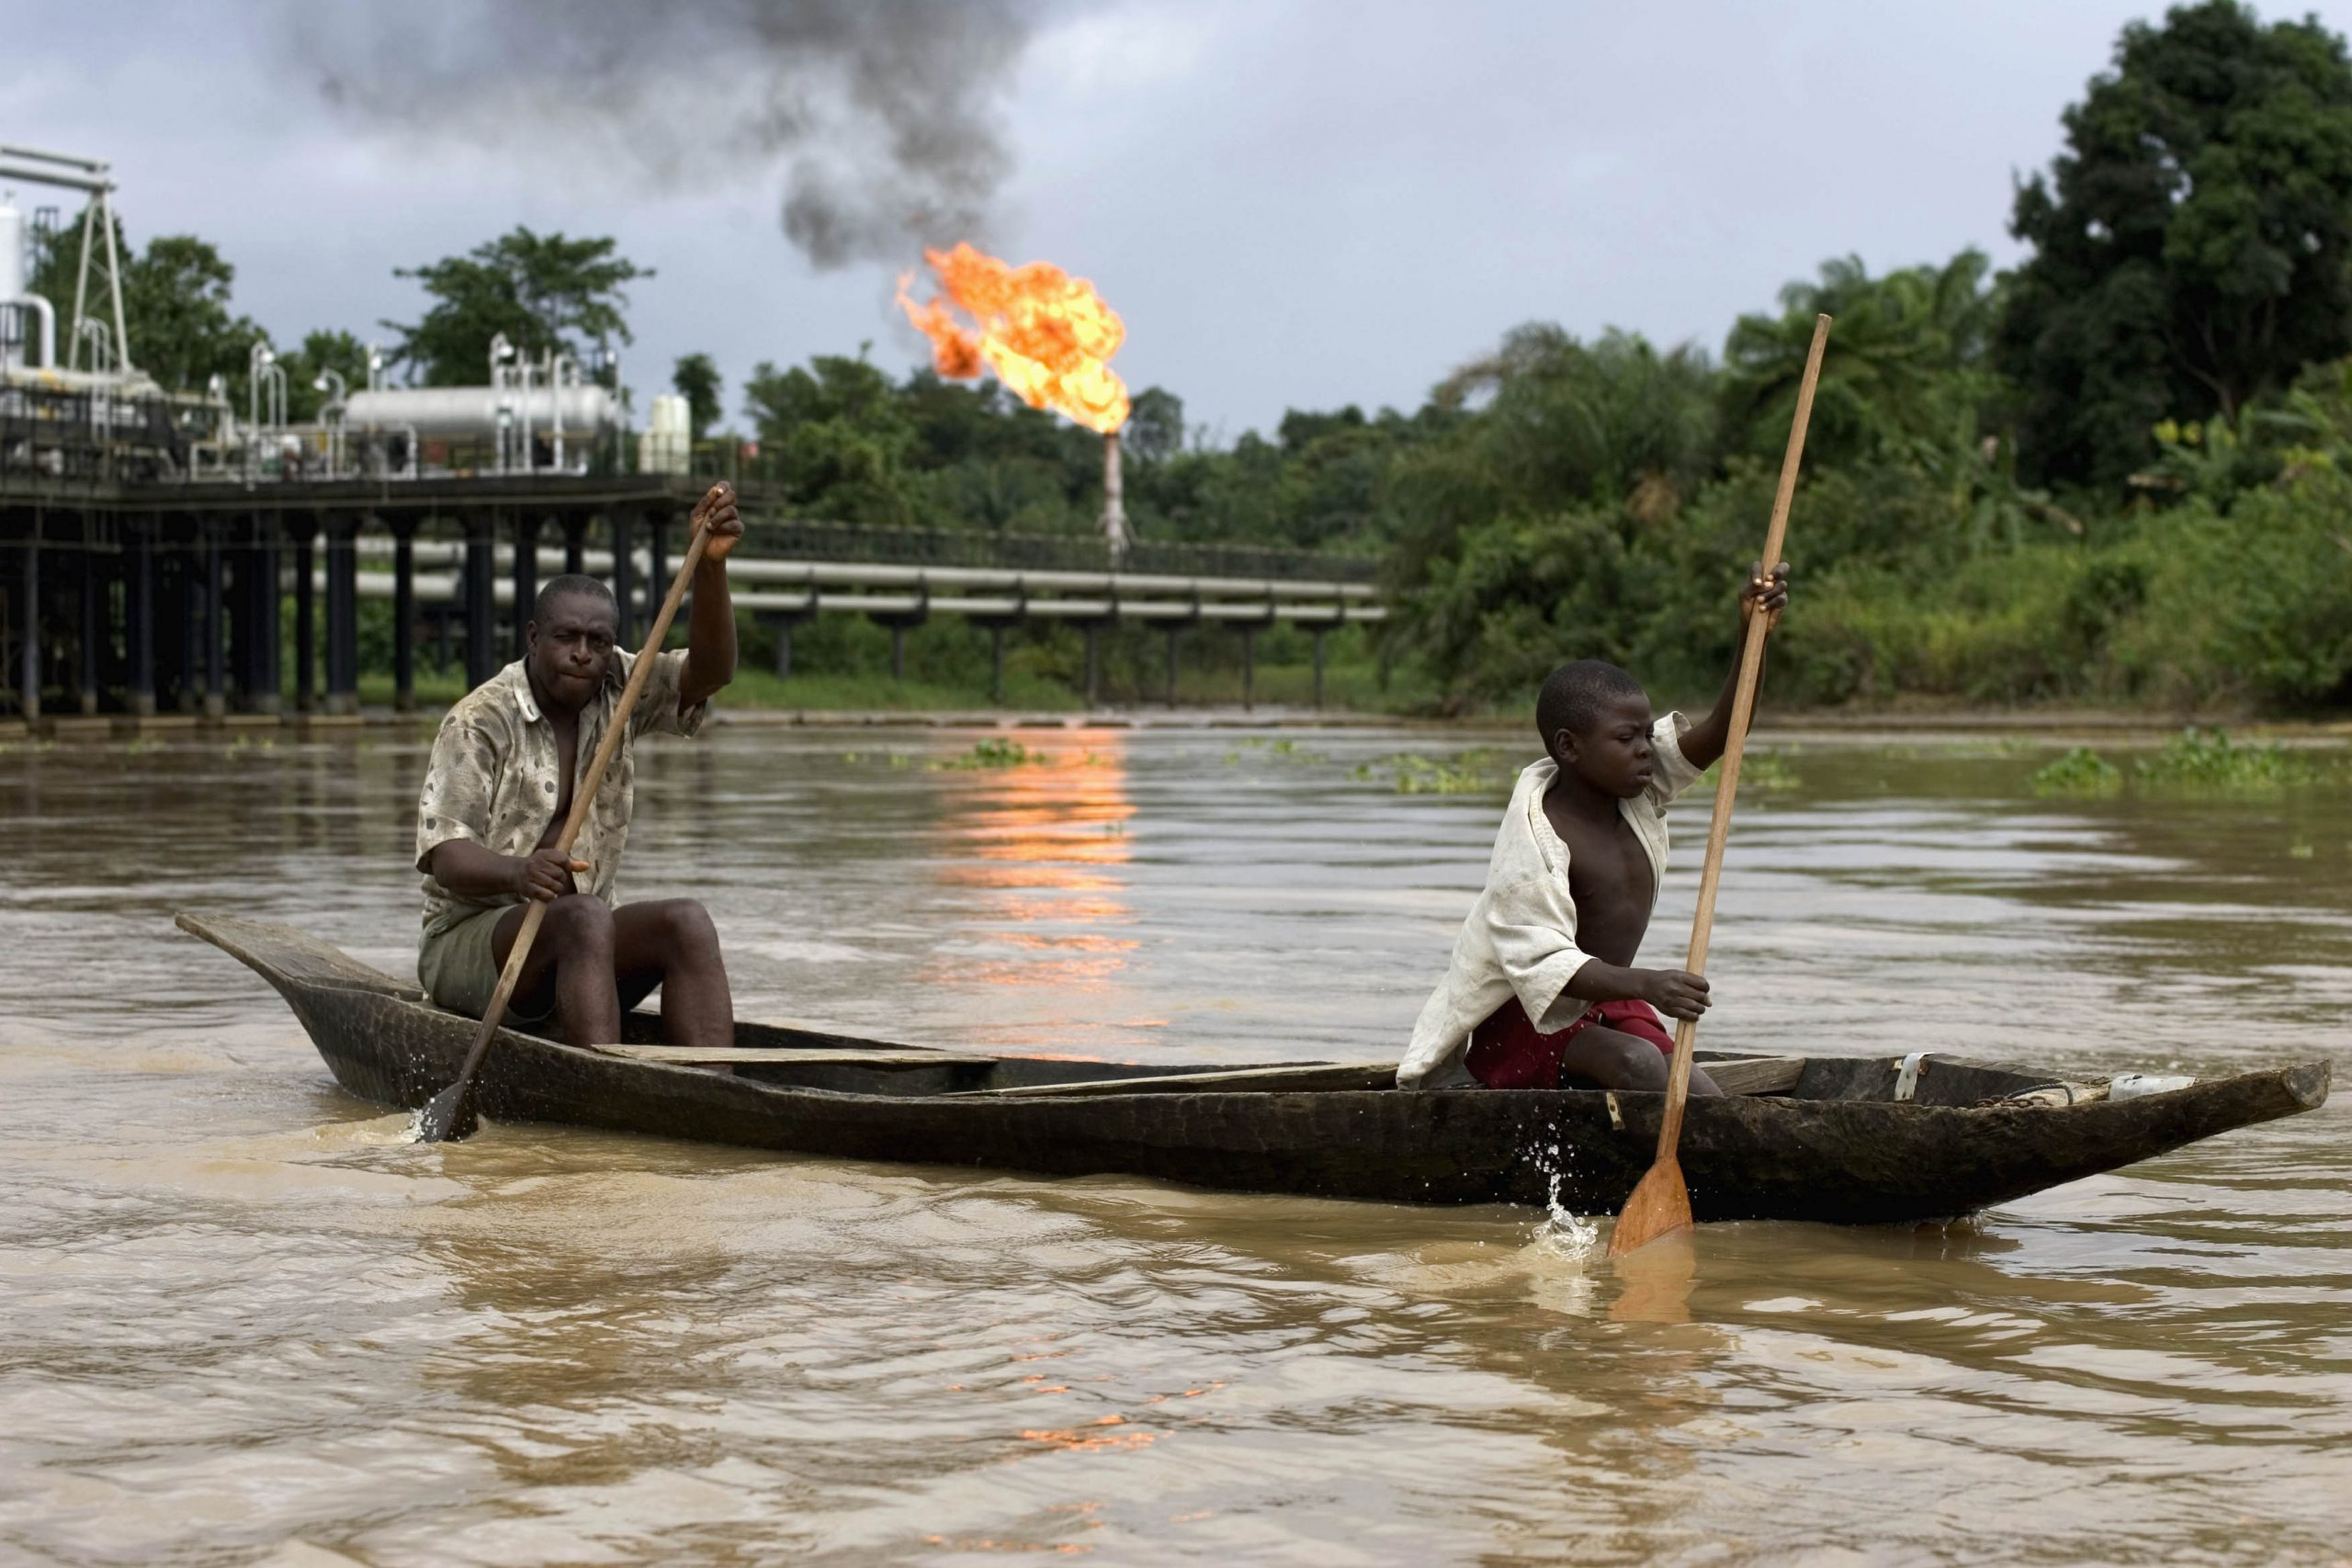 Bayelsa: Chevron, Host Disagree Over Cause Of Dead Fishes